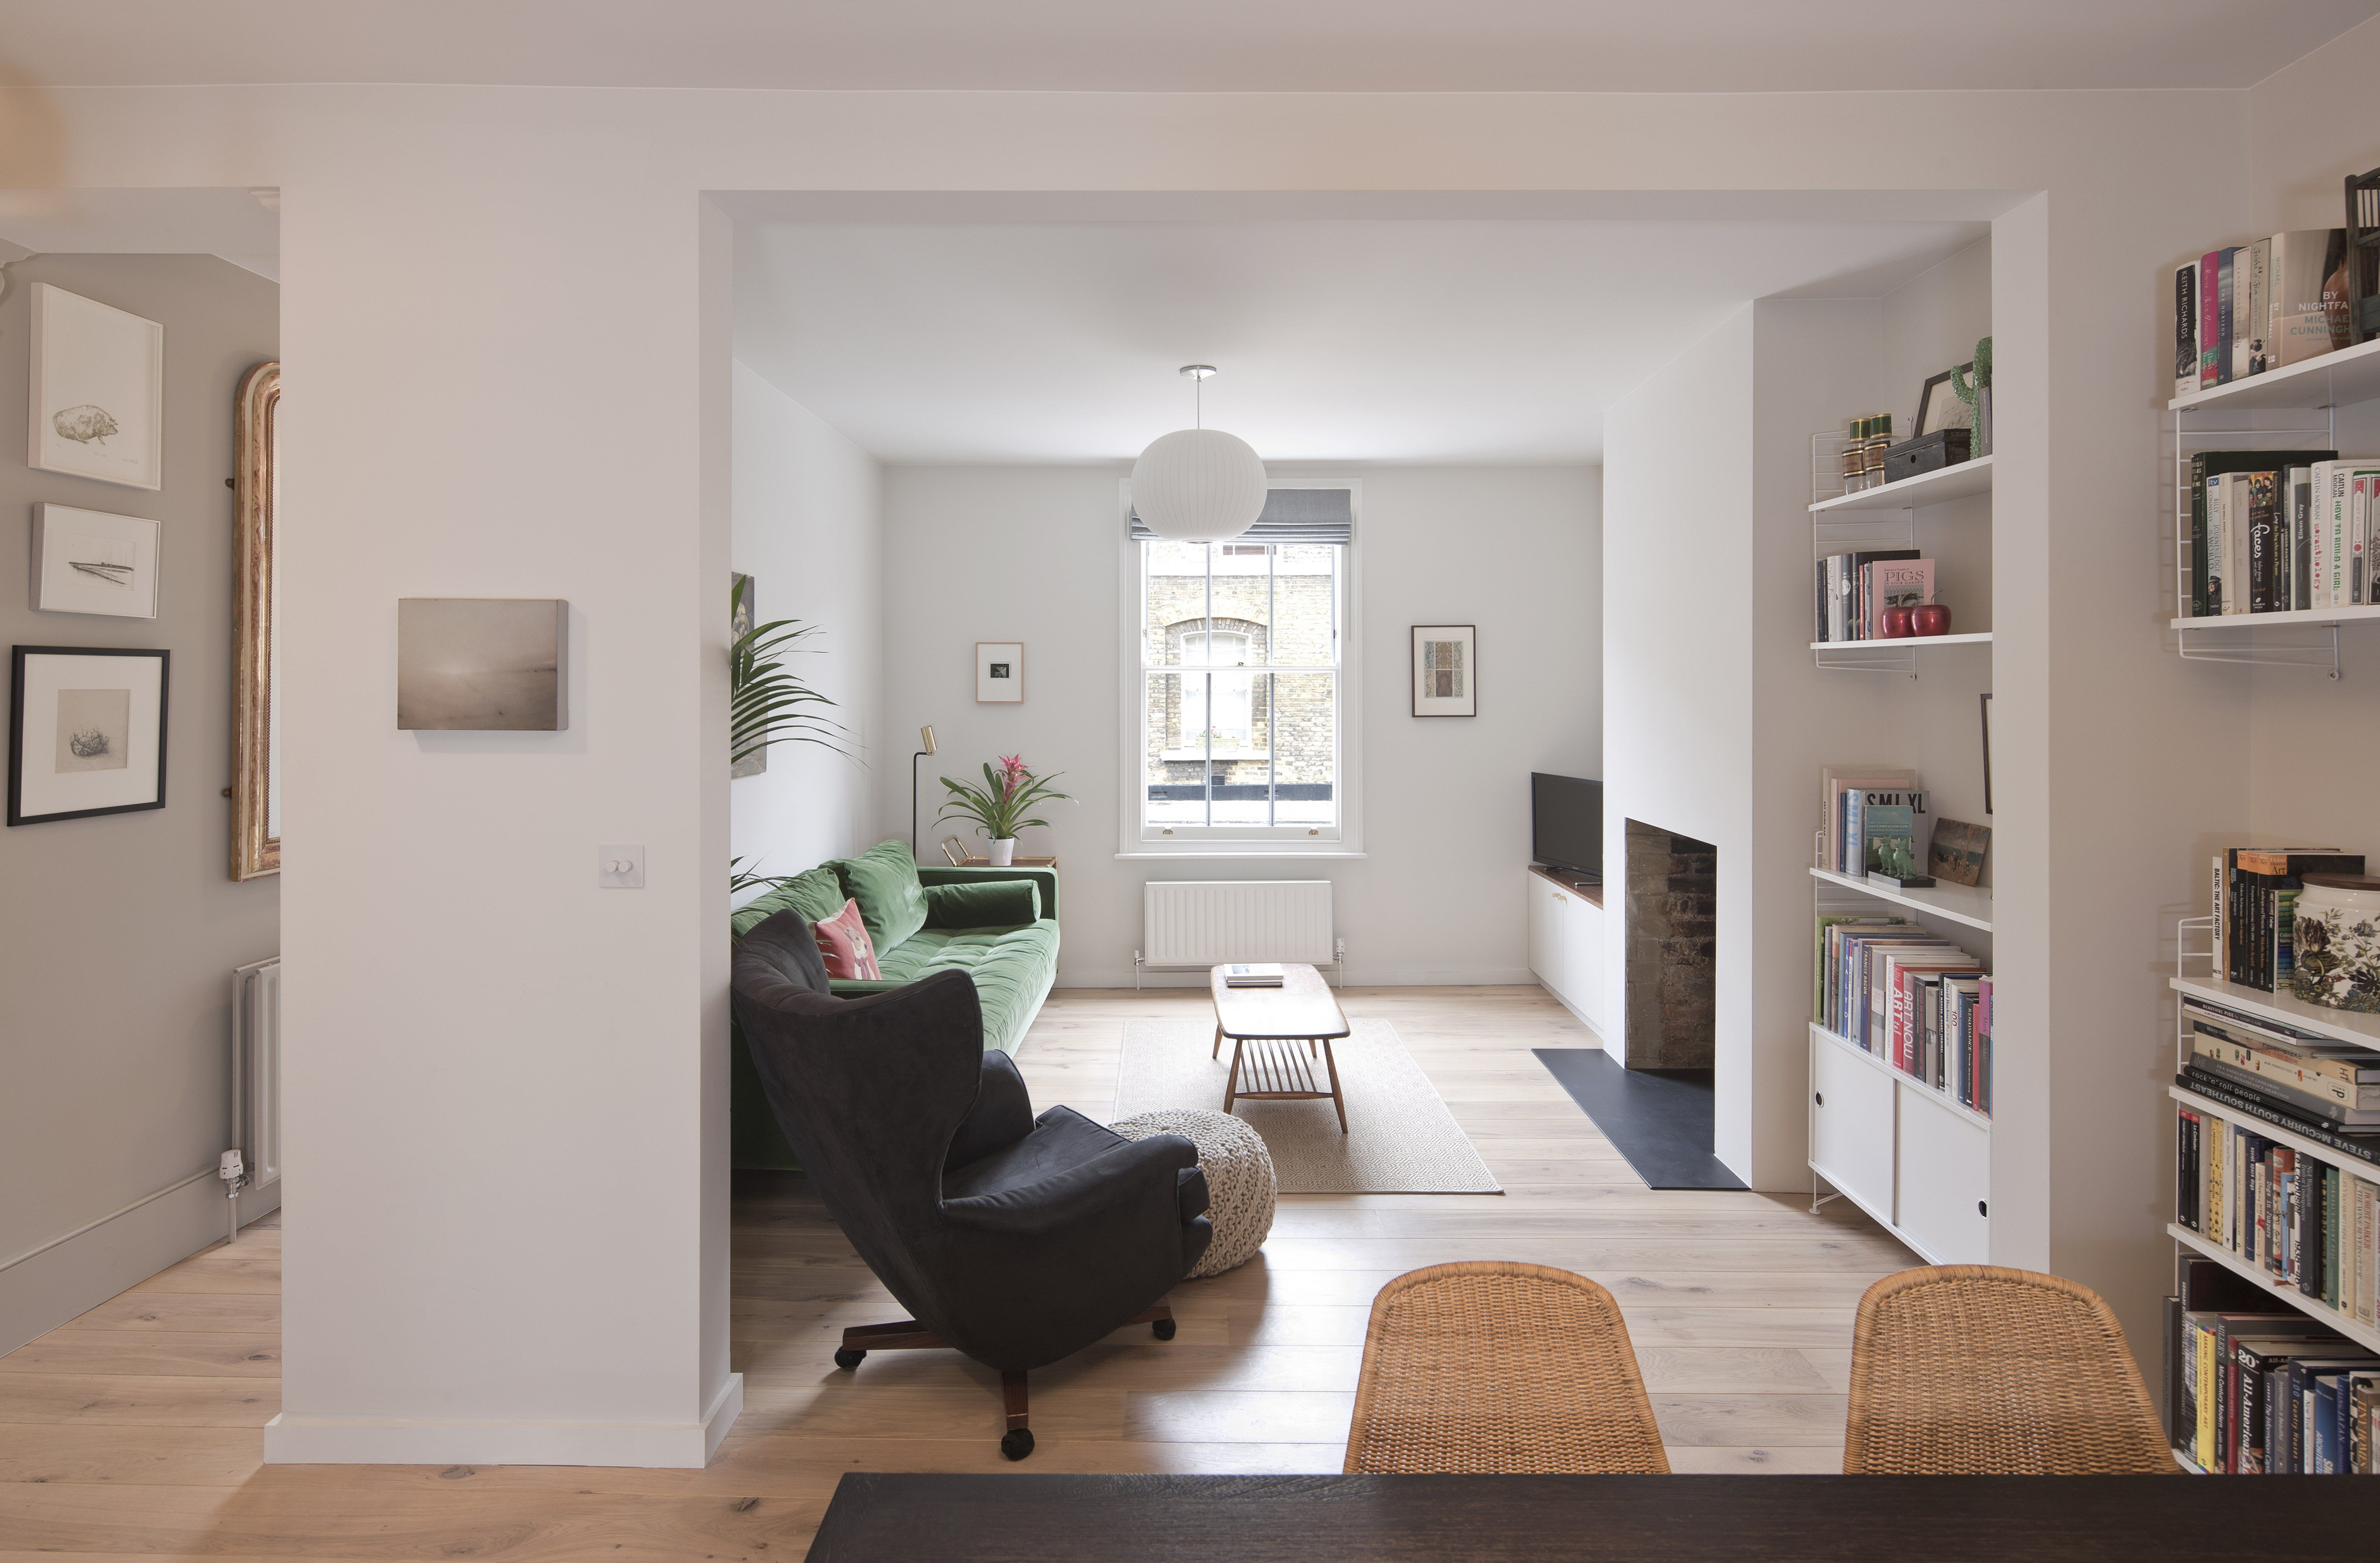 See How A Tiny Extension Turned This London Rowhouse Into A Dream Home Row House Home House Extension Design #row #home #living #room #ideas